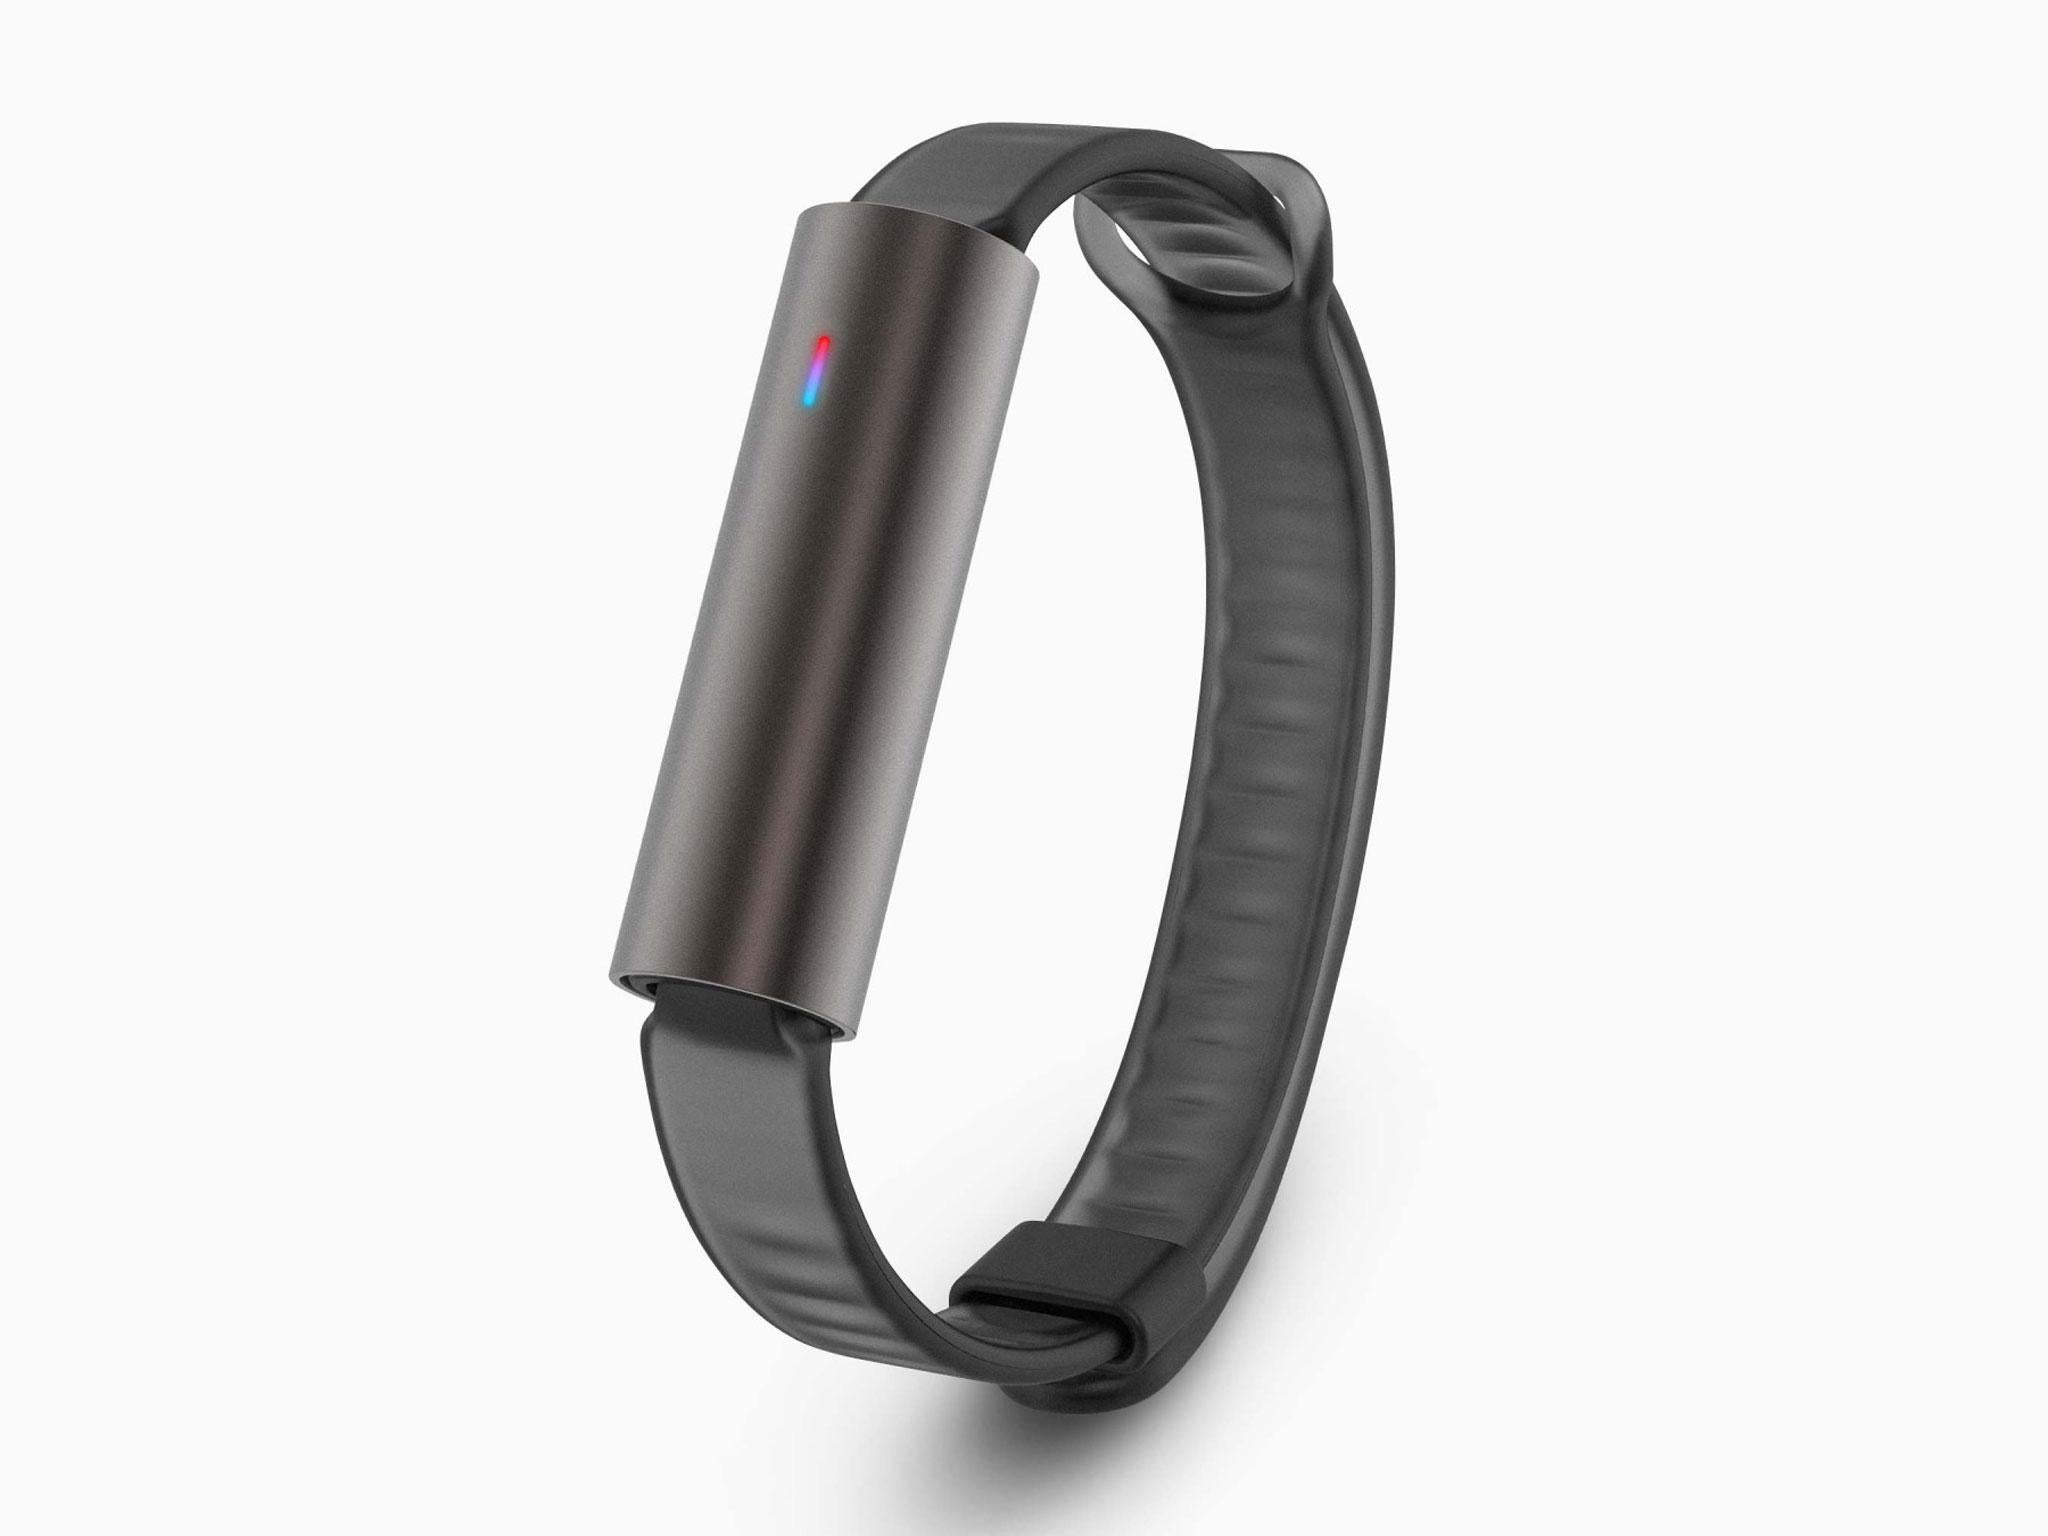 10 Best Fitness Trackers The Independent 2 Way Switch Circuit Uk Small And Lightweight Theres Very Little In Of Information Available On Your Wrist